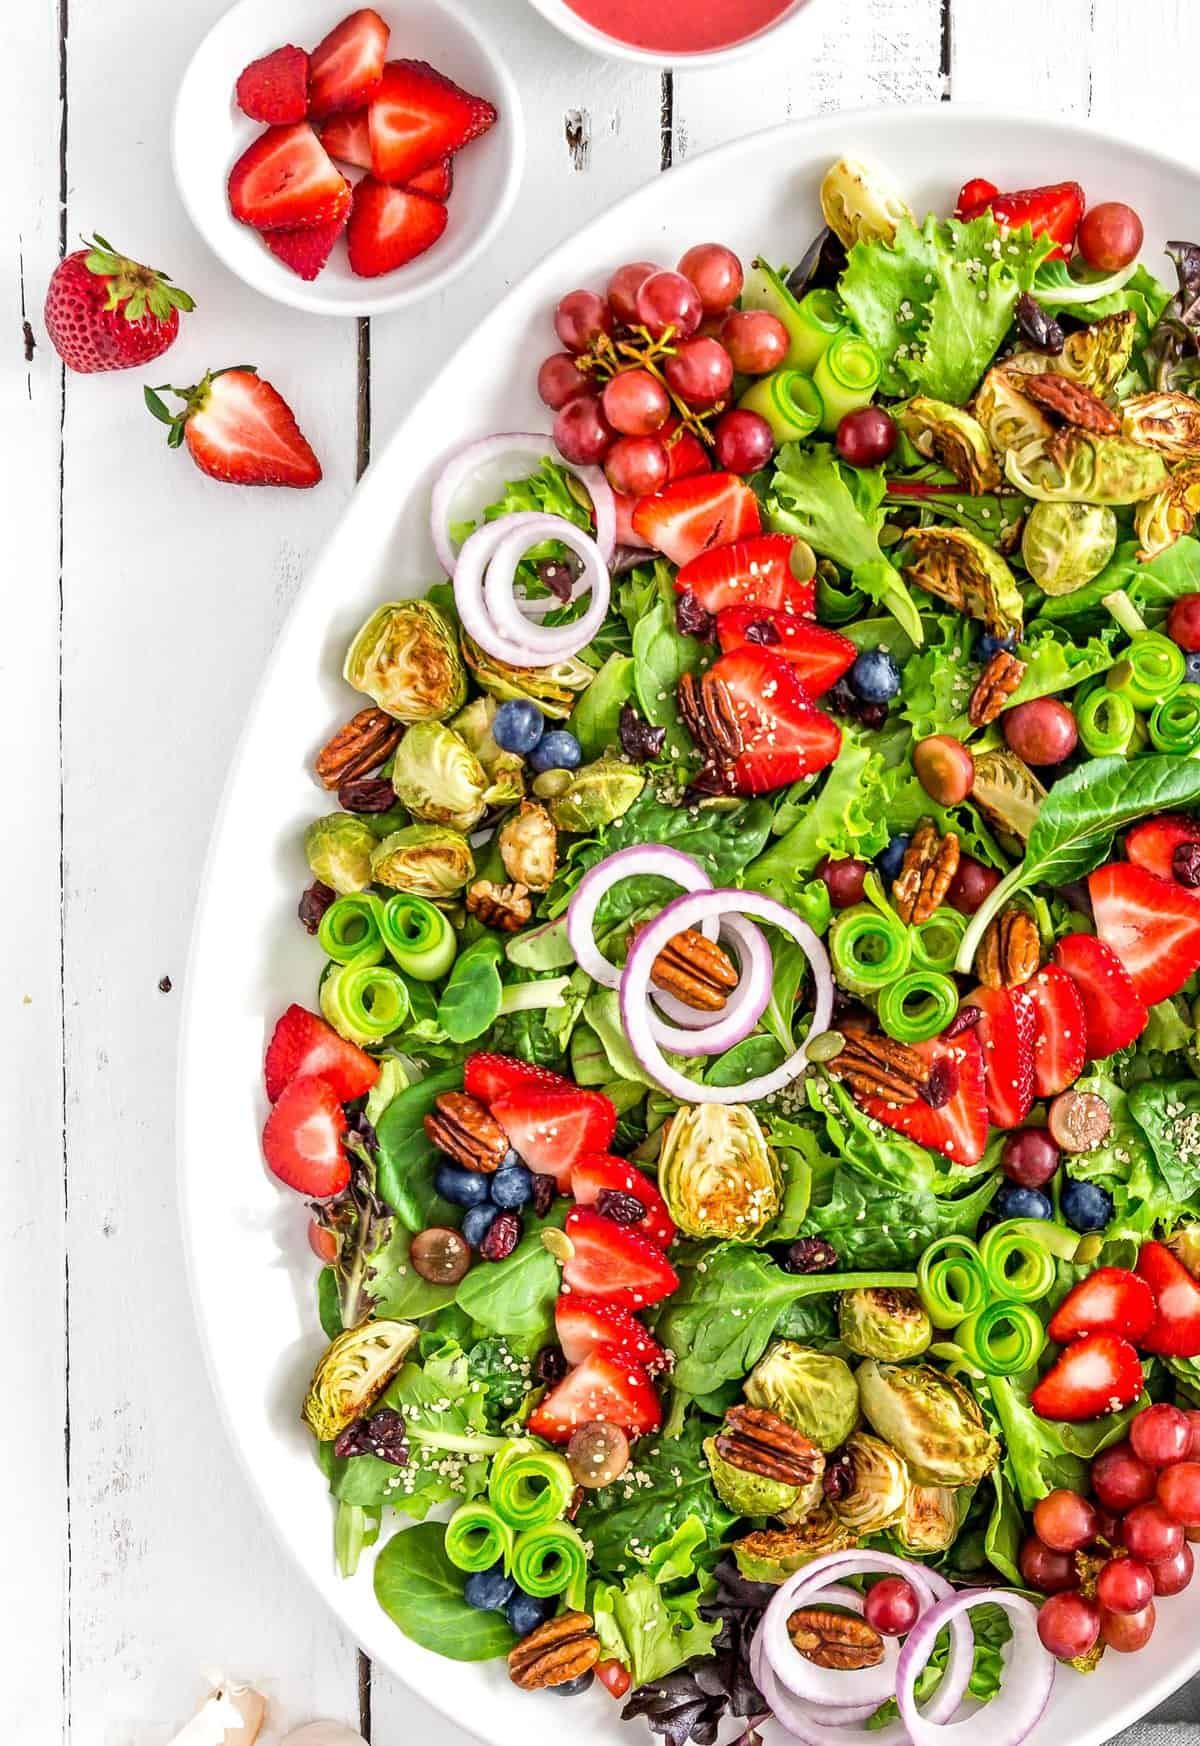 Roasted Brussel Sprout Salad with Strawberry Vinaigrette, vegan salad, strawberry vinaigrette, vegan dinner, plant based, vegan, vegetarian, whole food plant based, gluten free, recipe, wfpb, healthy, healthy vegan, oil free, no refined sugar, no oil, refined sugar free, dairy free, Brussel sprouts, strawberry dressing, strawberry salad, Brussel sprout salad, dinner, fast recipe, easy recipe